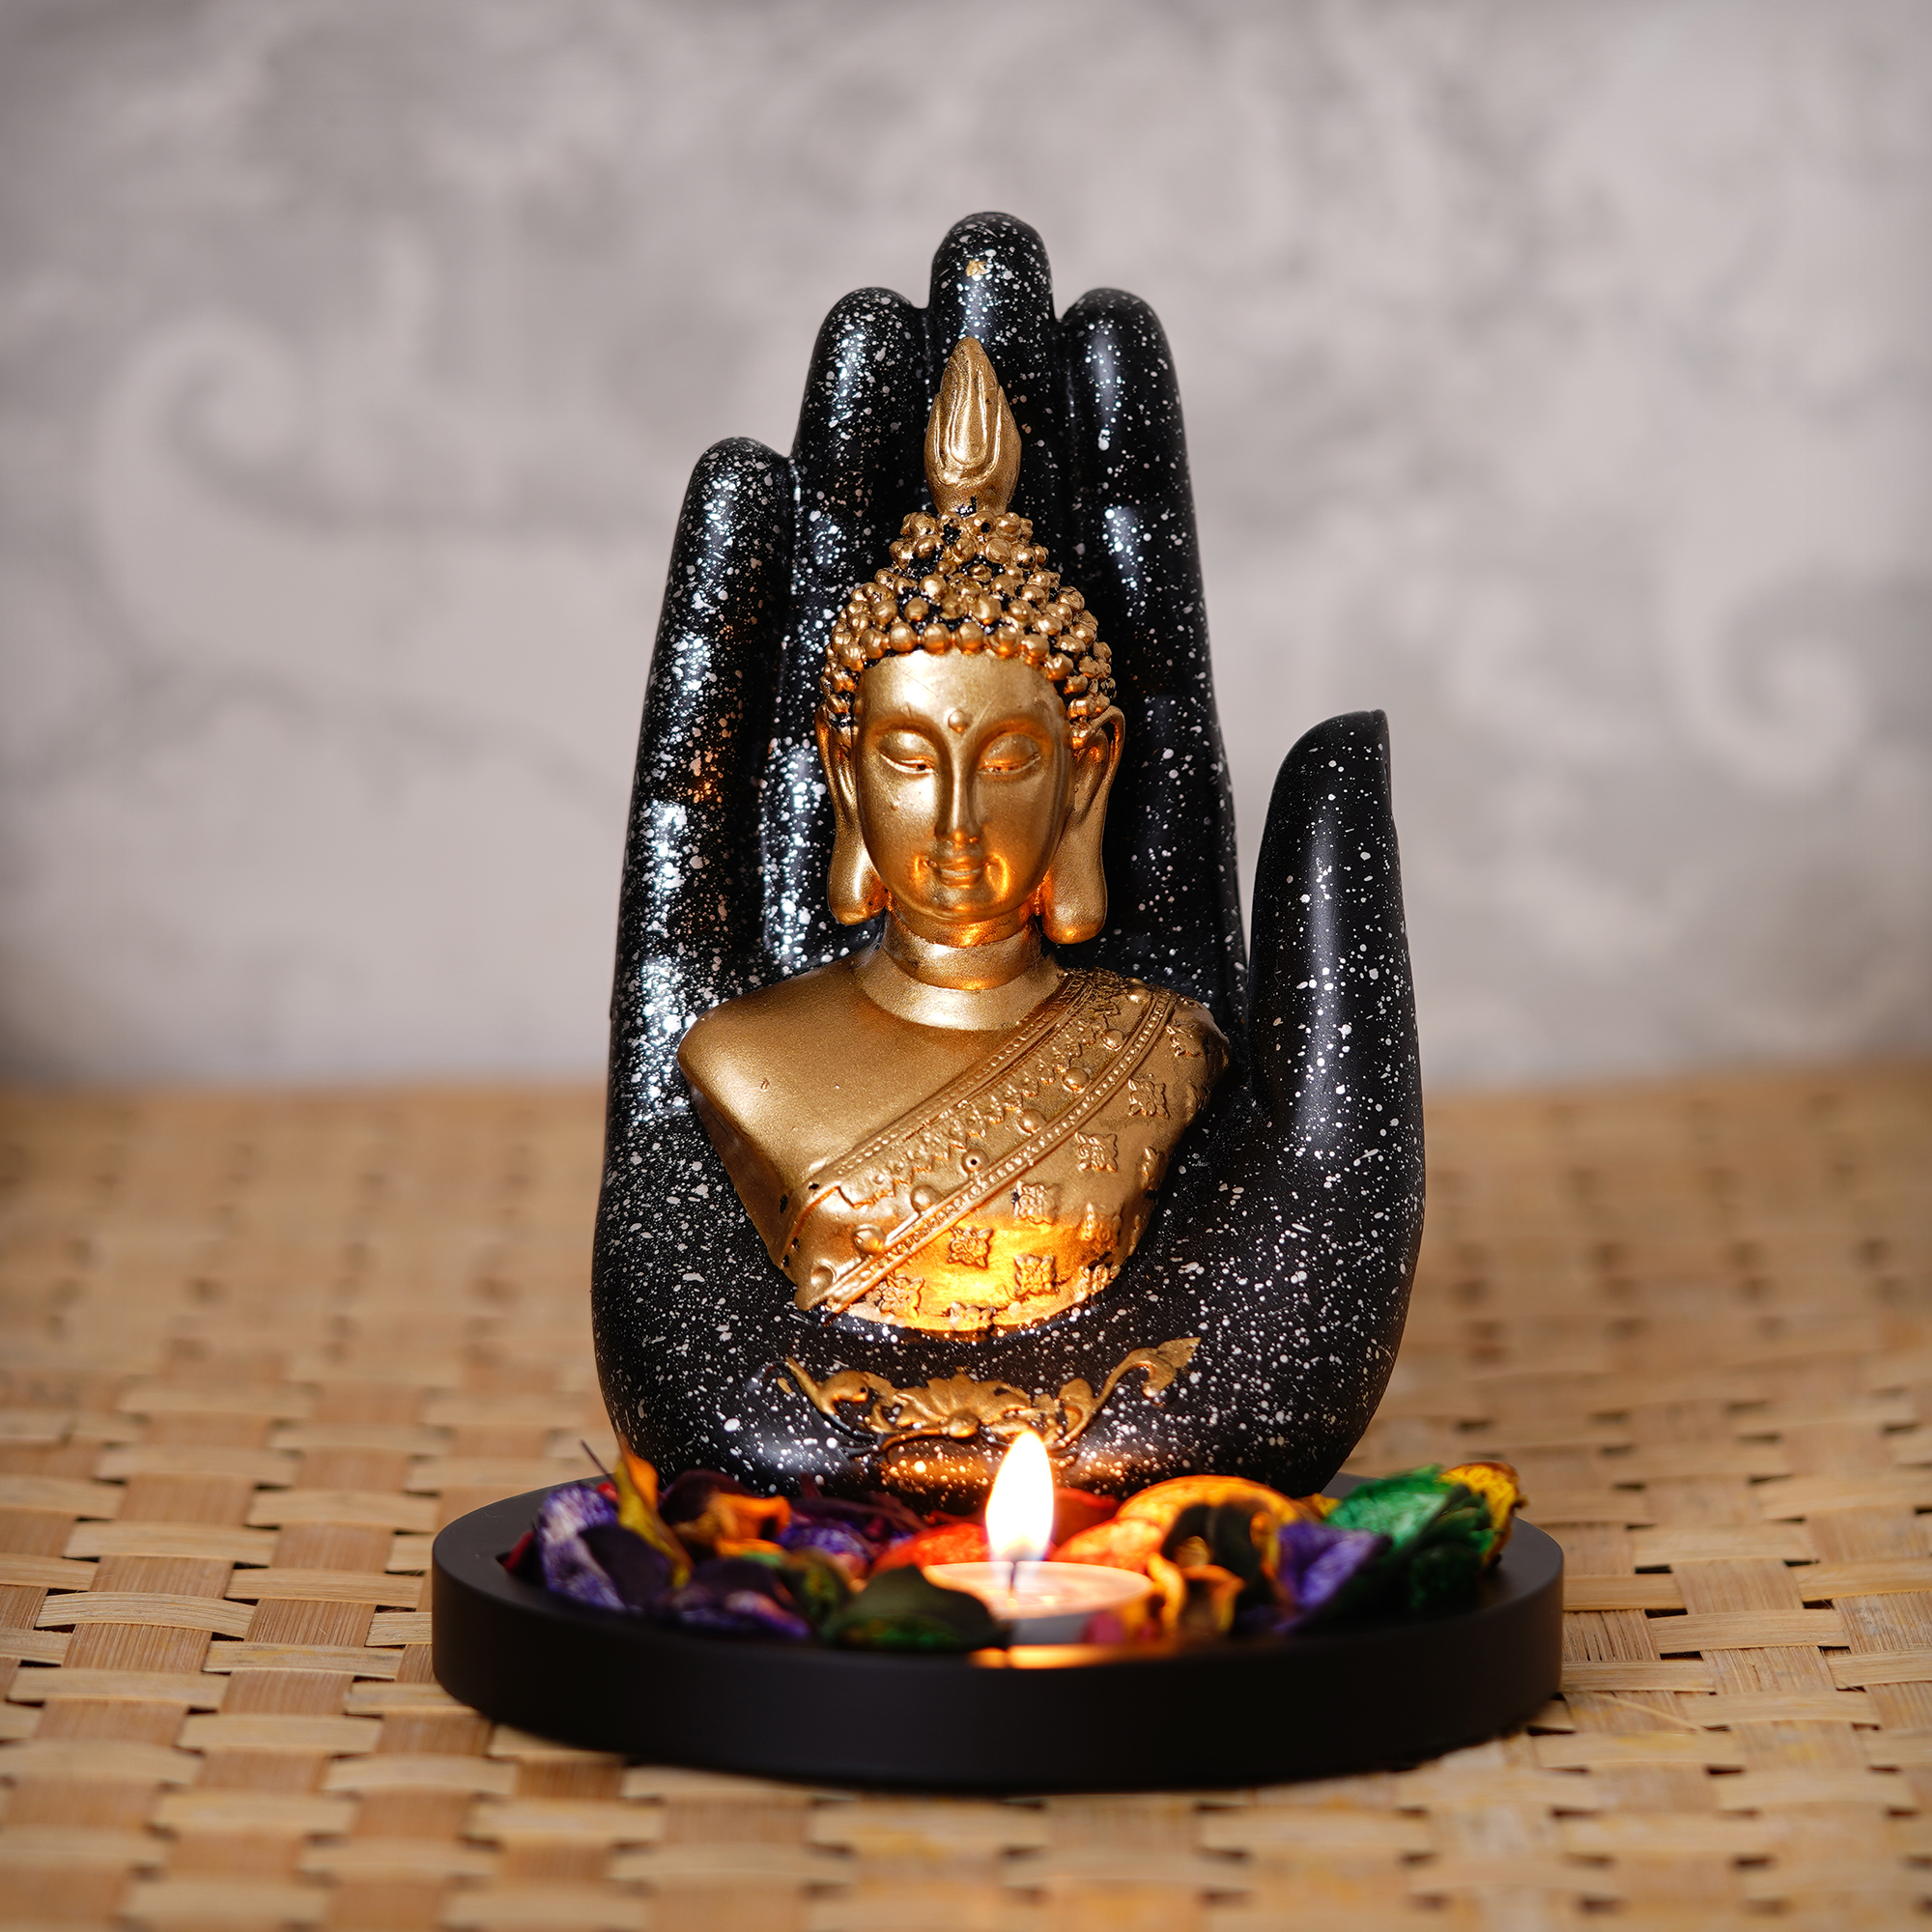 Golden Silver Handcrafted Palm Buddha with Wooden Base, Fragranced Petals and Tealight Indian Home Decor